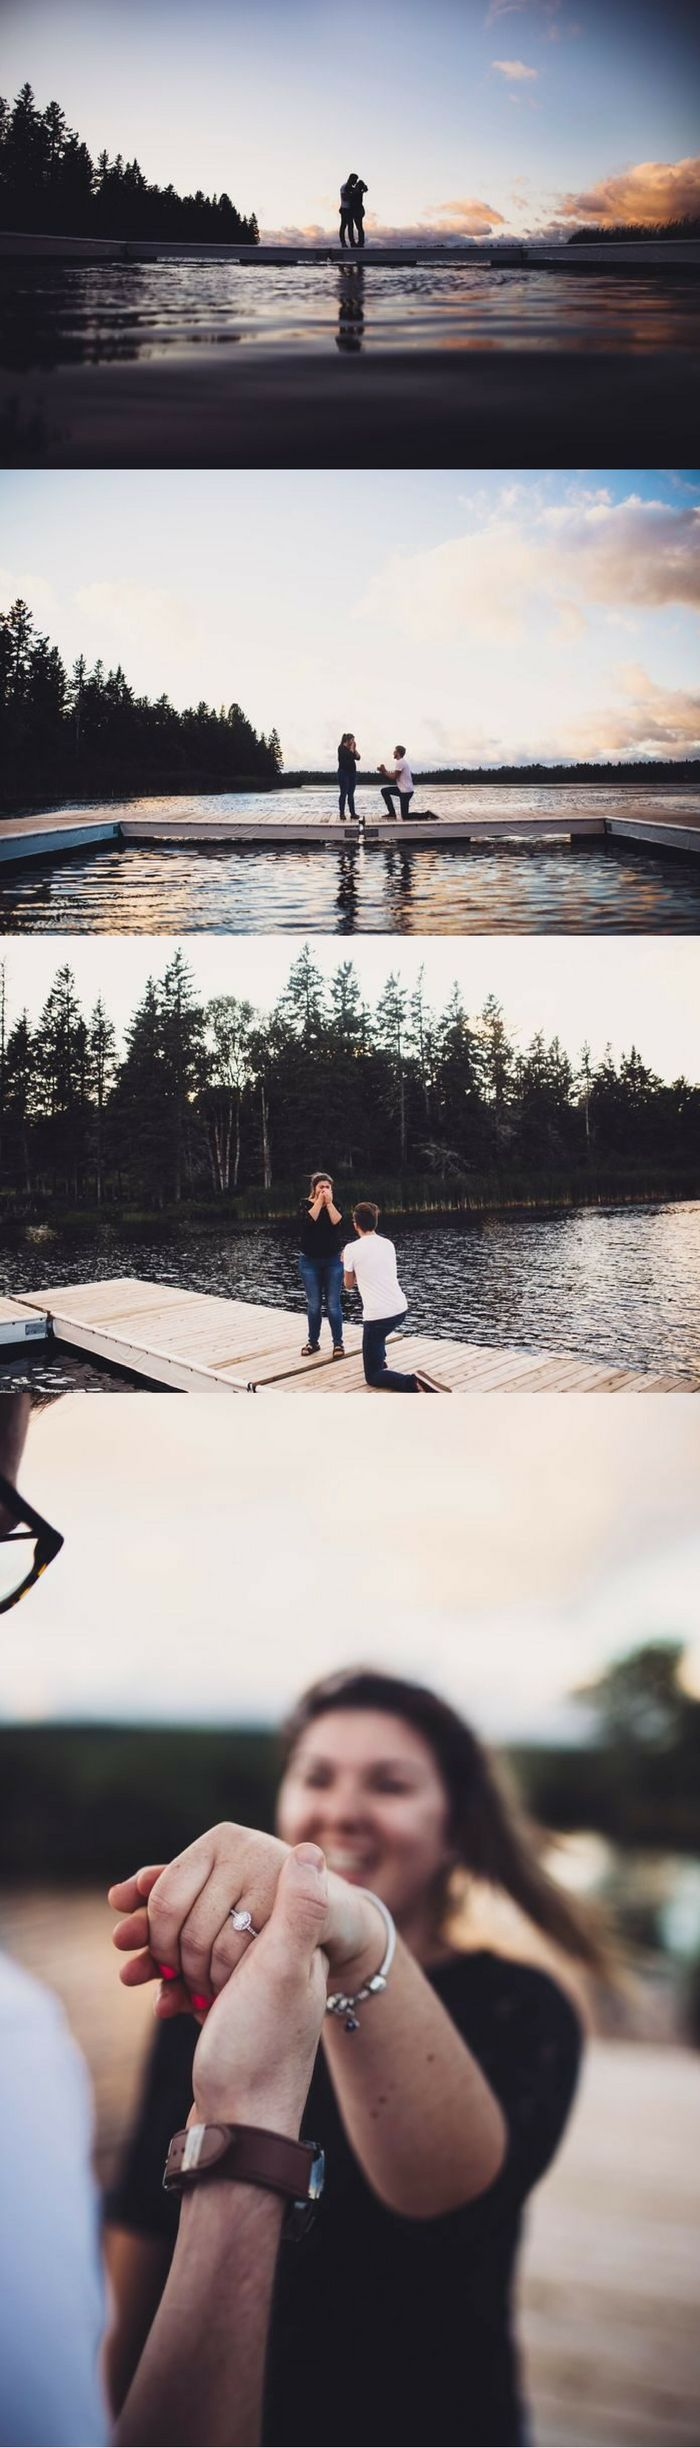 The last thing she expected during their photoshoot was for him to get on one knee, but she couldn't wait to say yes!